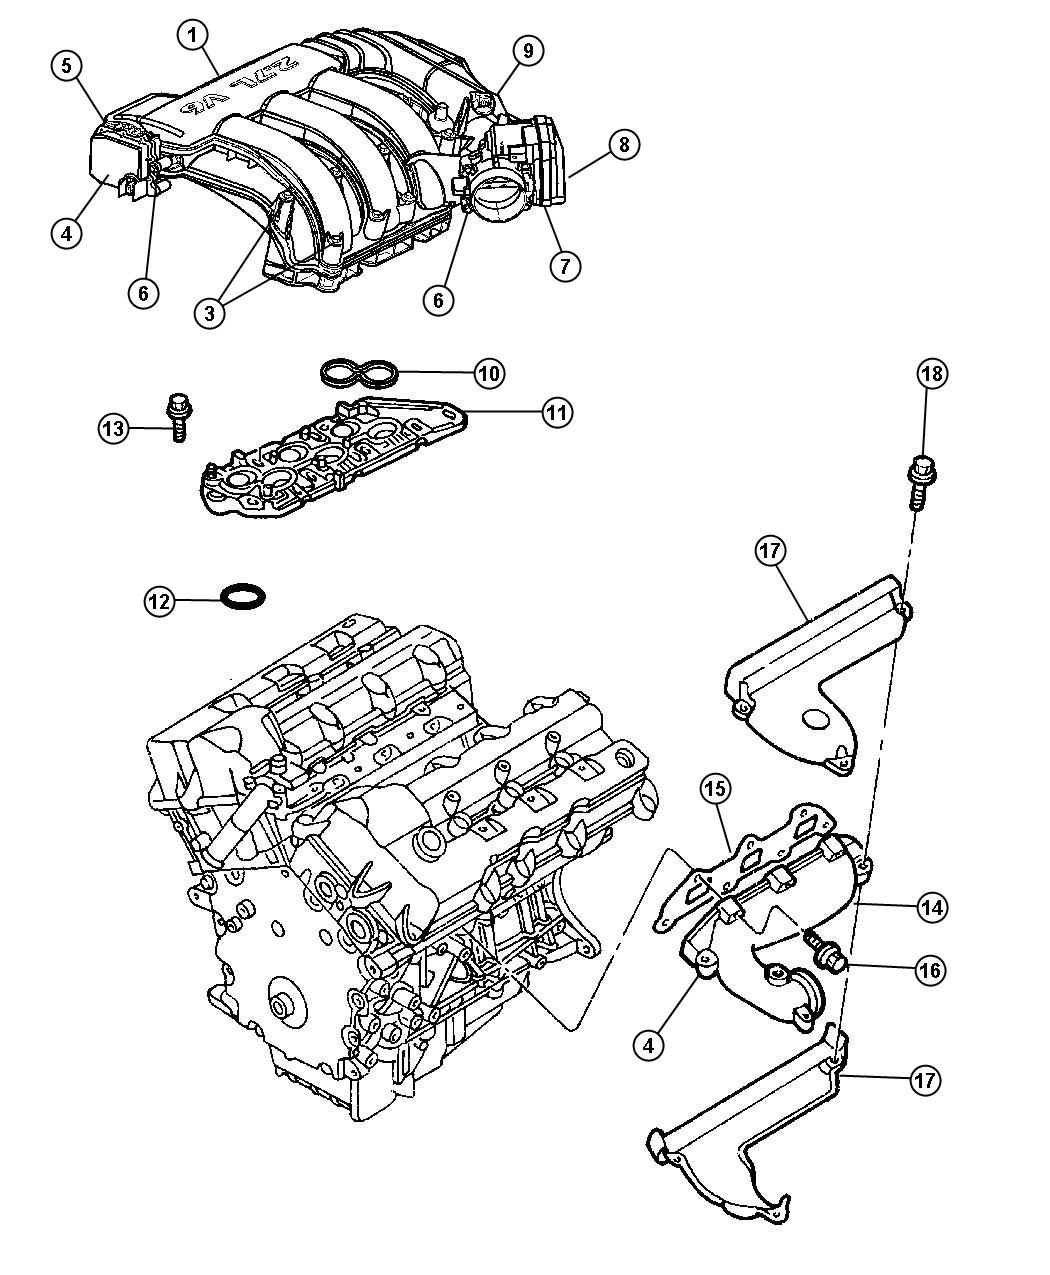 hight resolution of 2007 dodge nitro 3 7l engine diagram wiring diagram third level rh 9 8 15 jacobwinterstein com diagram of dodge nitro engine dodge nitro 3 7 engine diagram